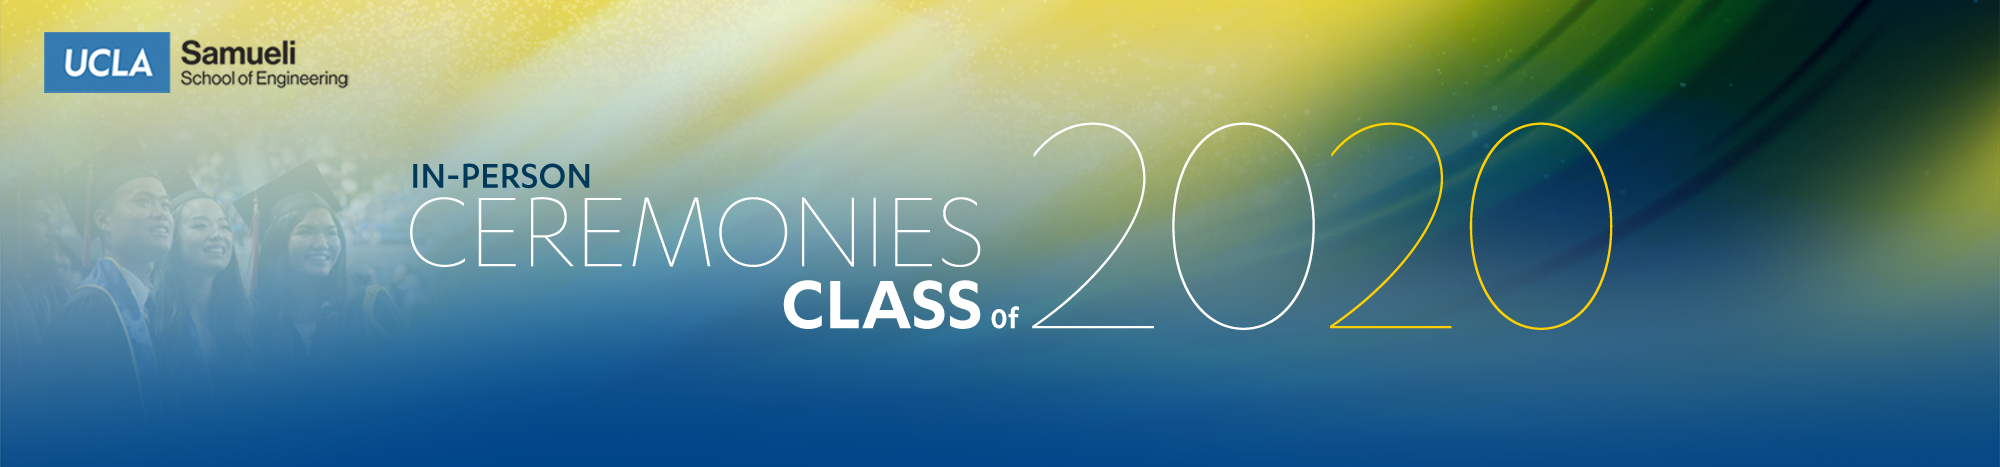 In-Person Ceremonies for Class of 2020